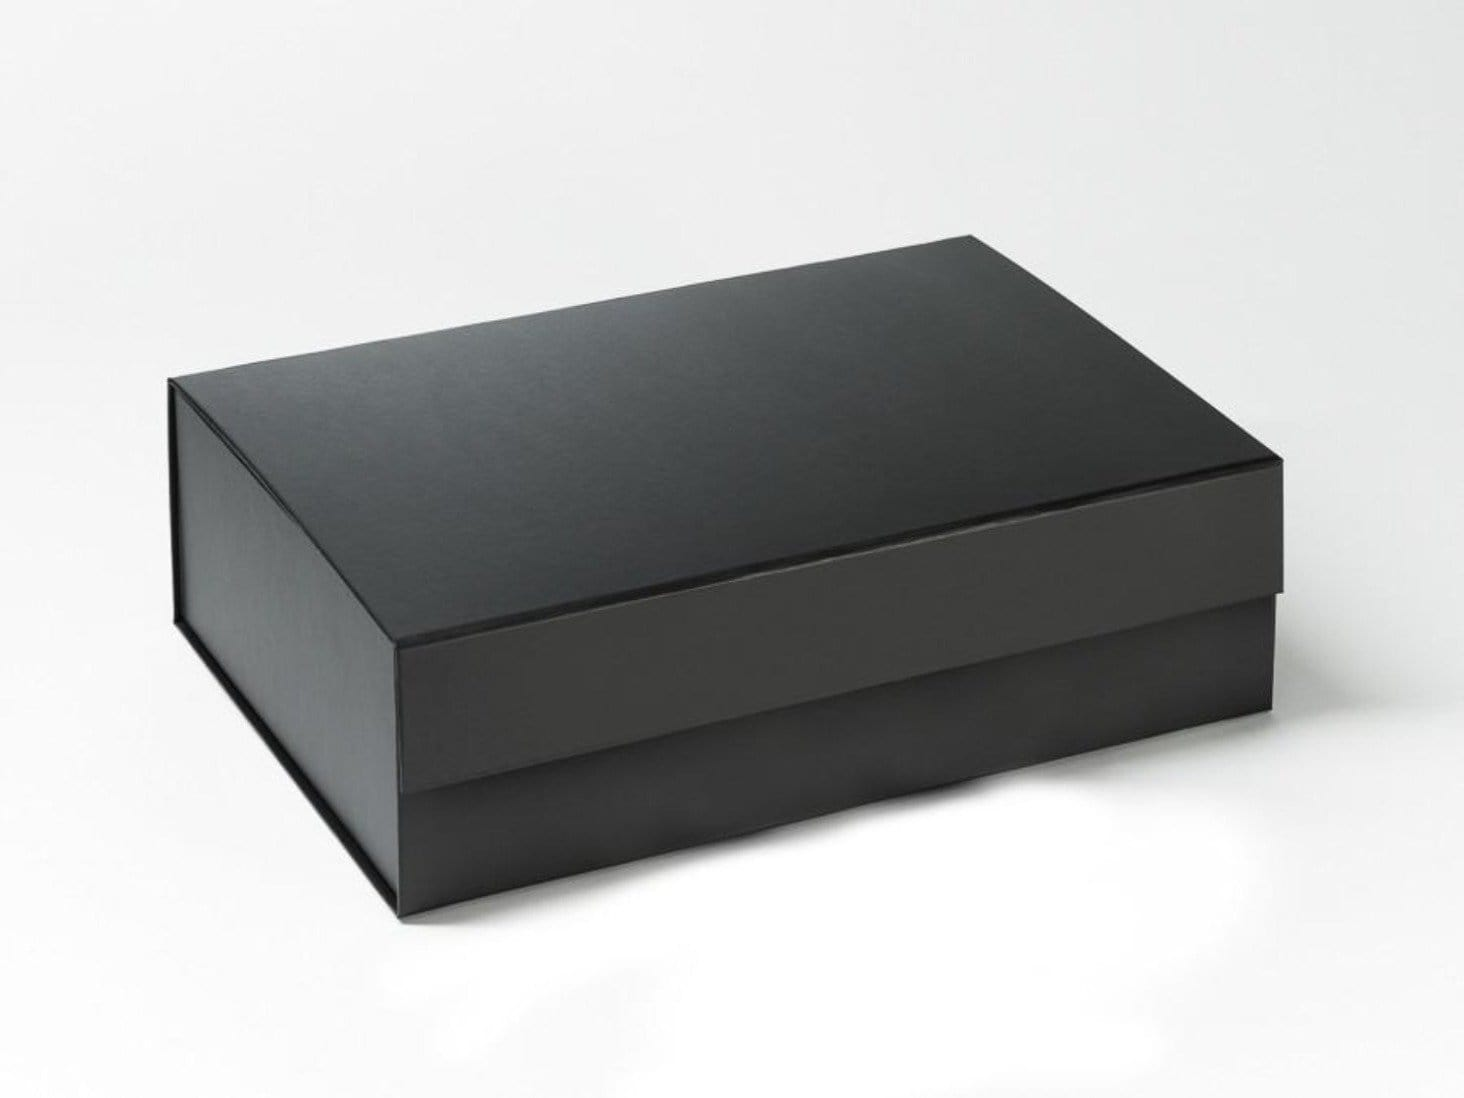 Black A4 Folding Magnetic Luxury Gift Hamper Box from Foldabox